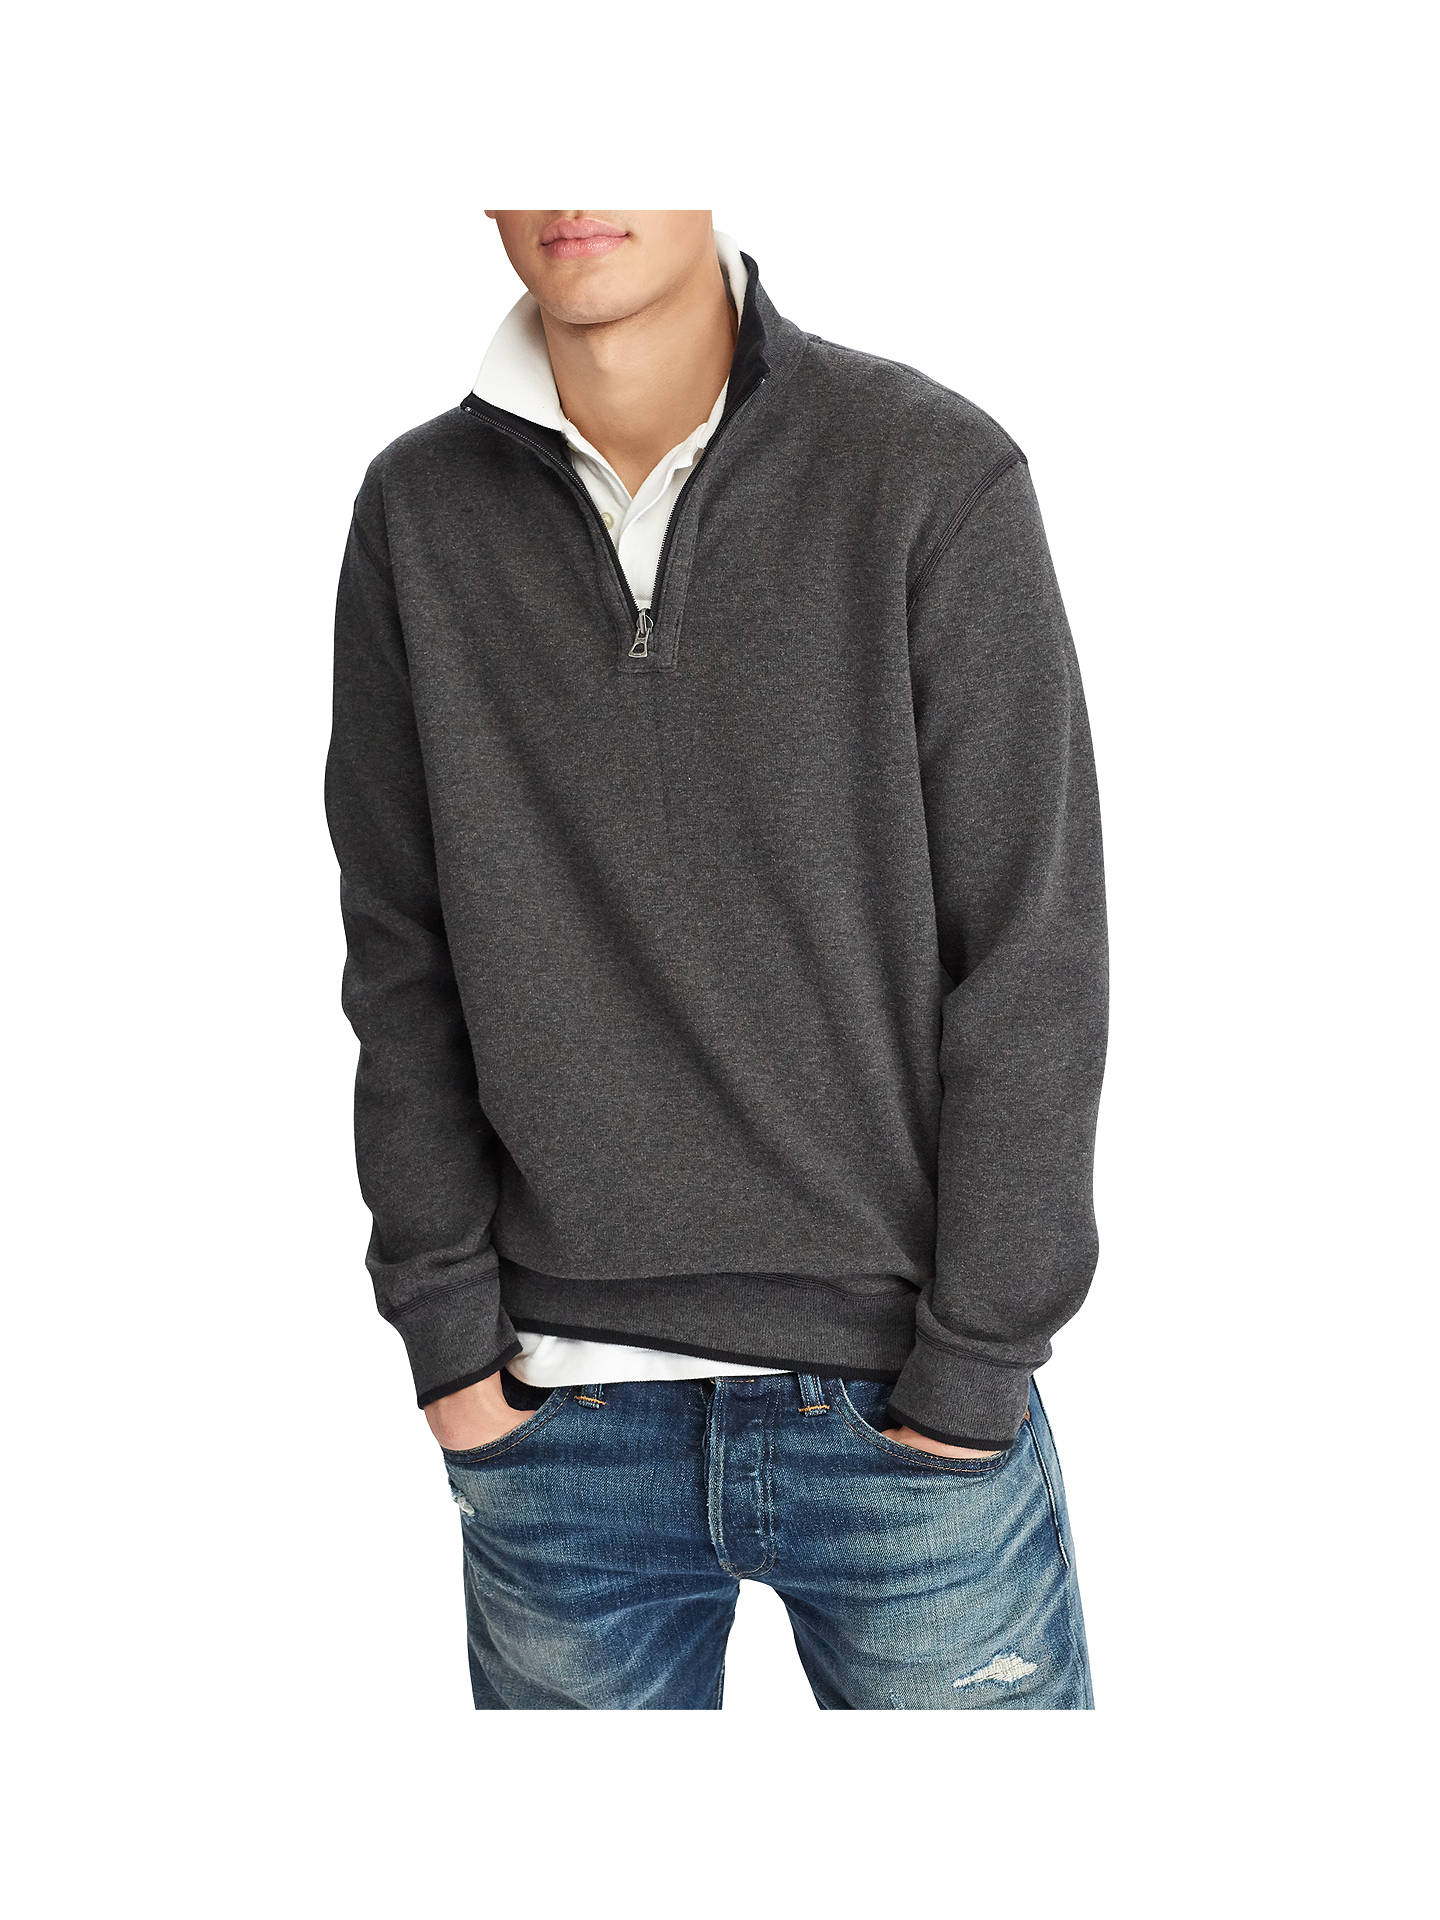 Long Reversible Half Polo John Zip Lauren Jumper Sleeve At Ralph f7yvYb6g